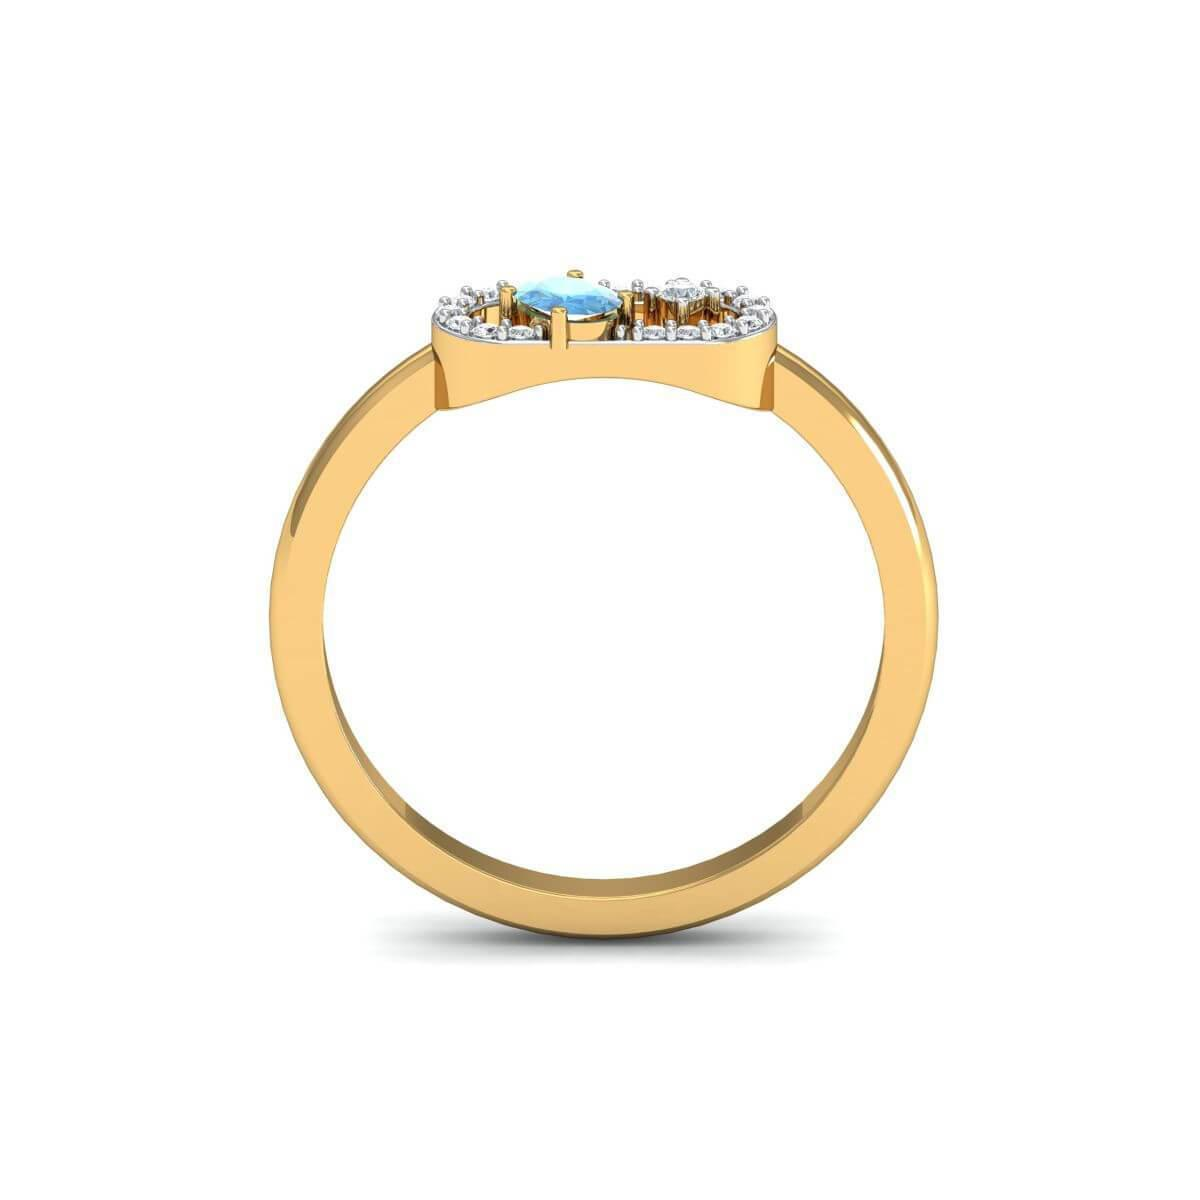 Diamoire Jewels 18kt Yellow Gold Pave 0.11ct Diamond Infinity Ring With Aquamarine - UK G 1/4 - US 3 1/2 - EU 45 3/4 jo02tq